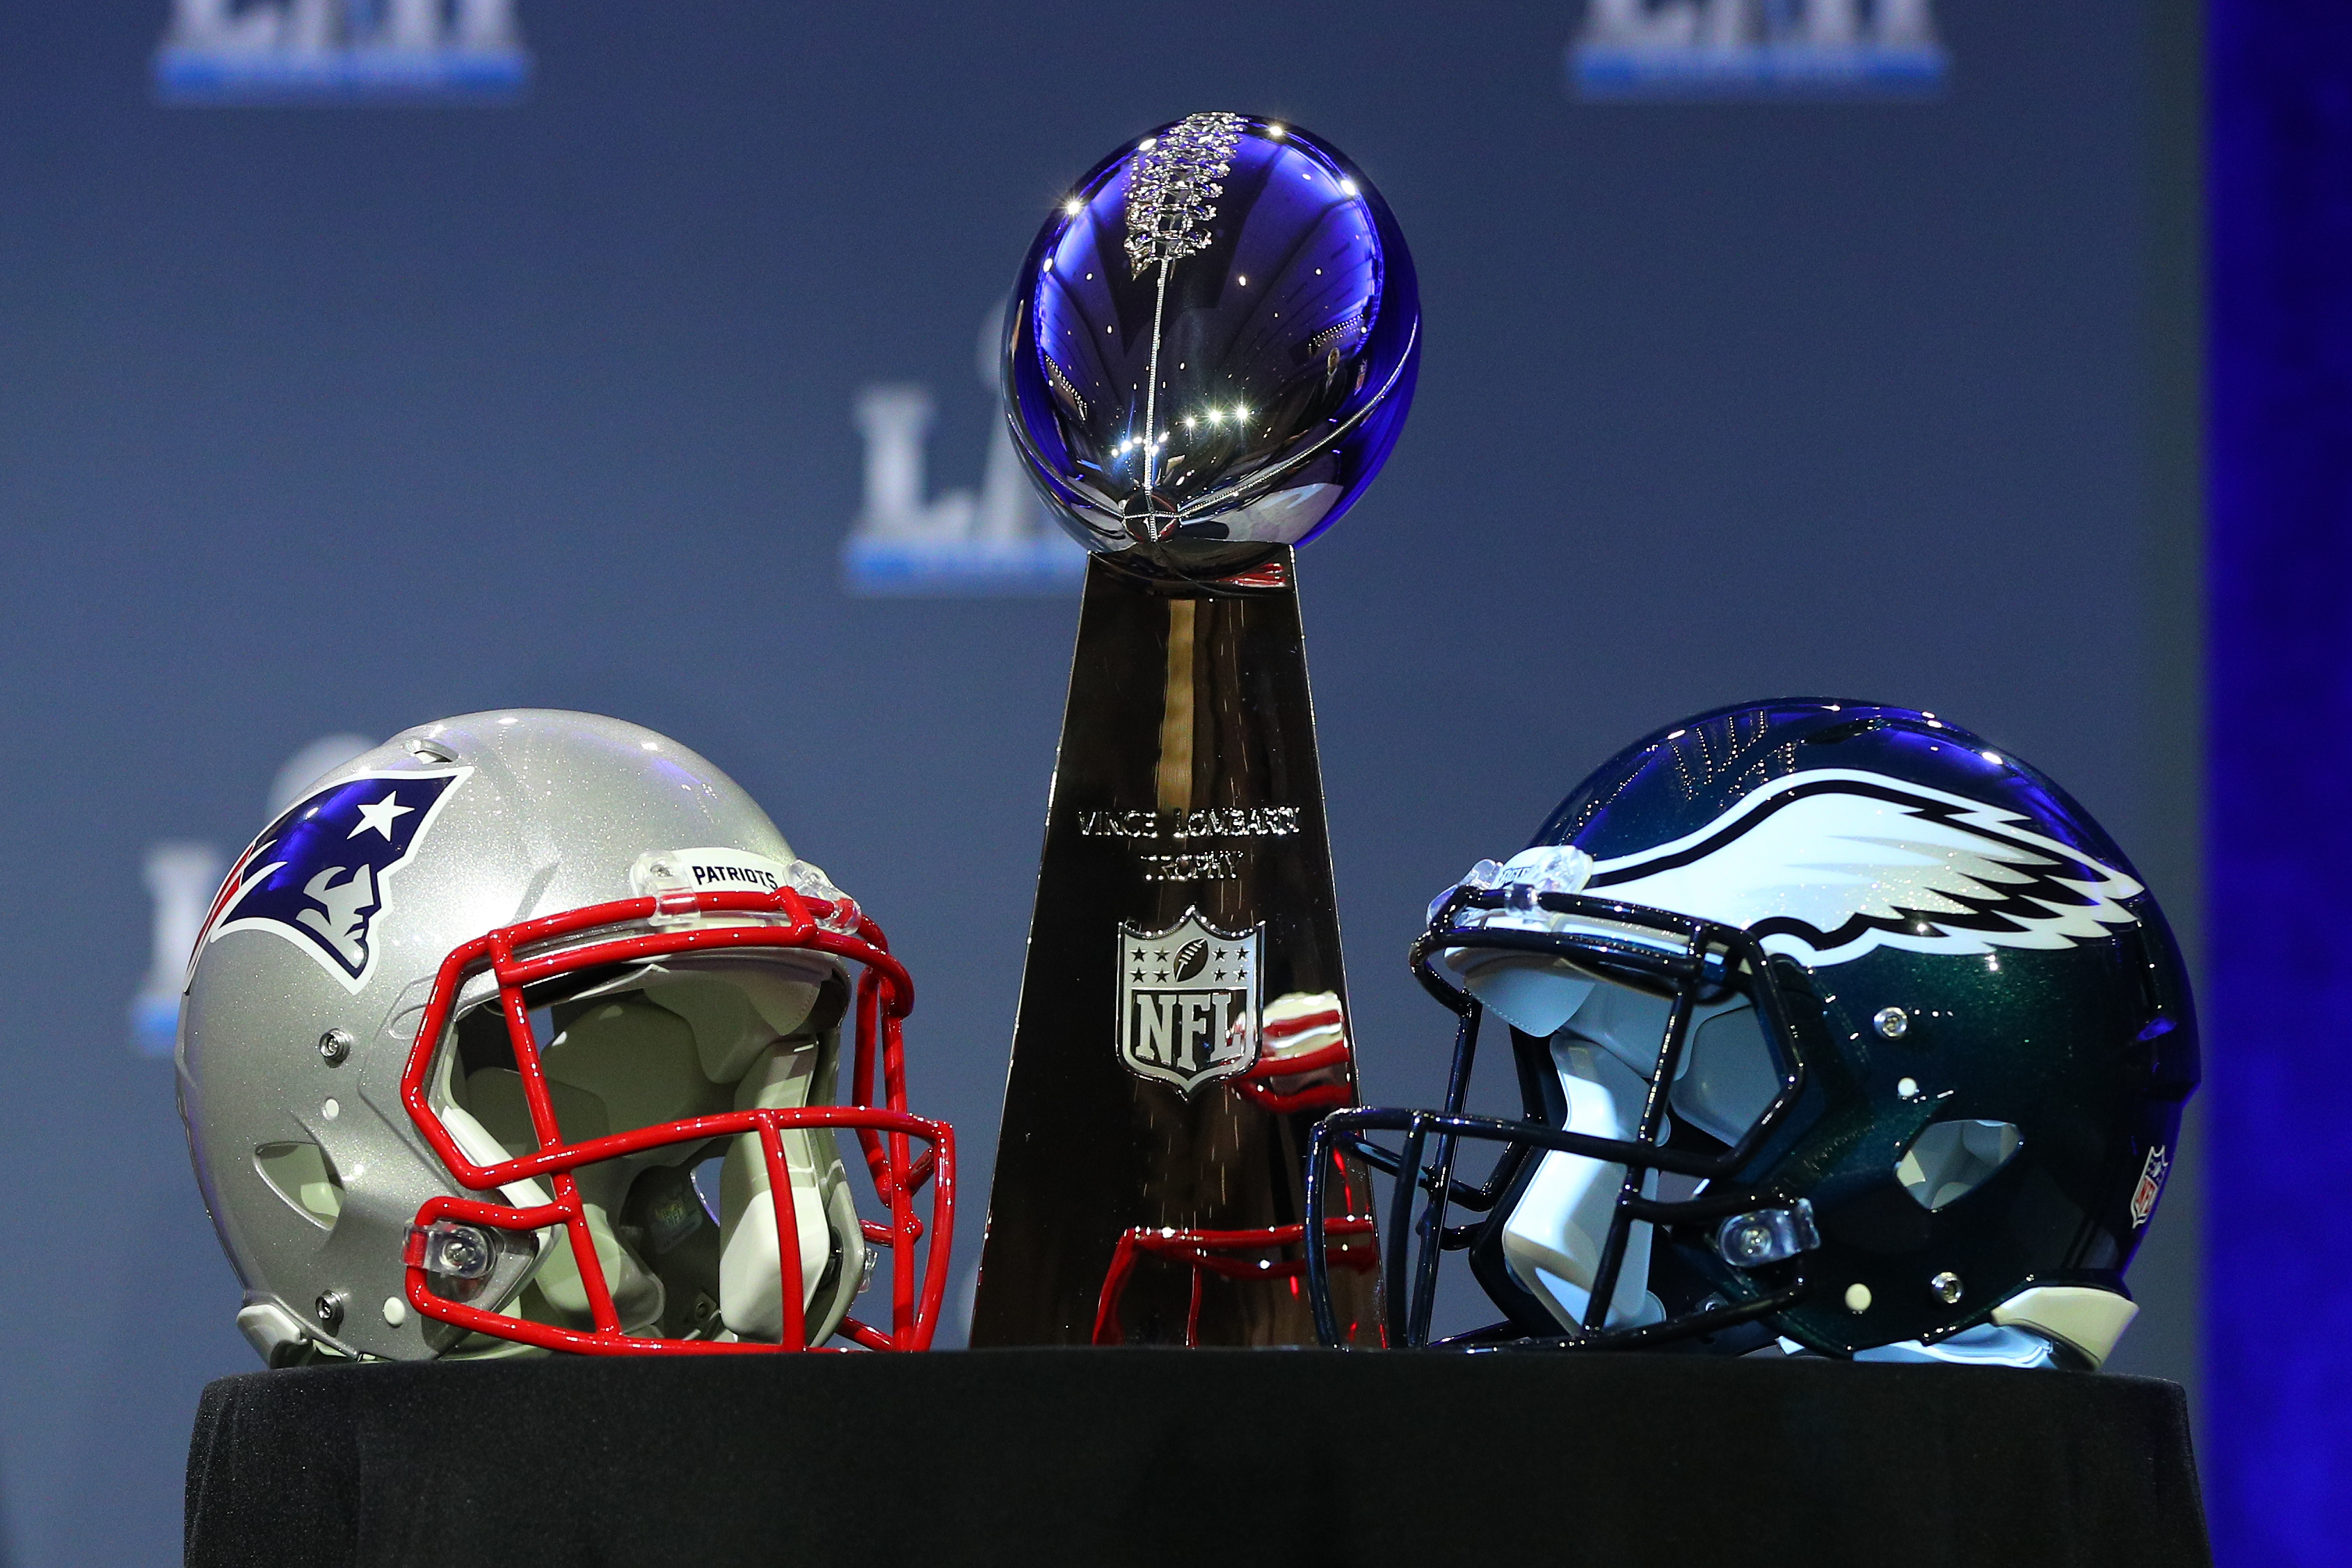 patriots-eagles-superbowl-sunday-2018